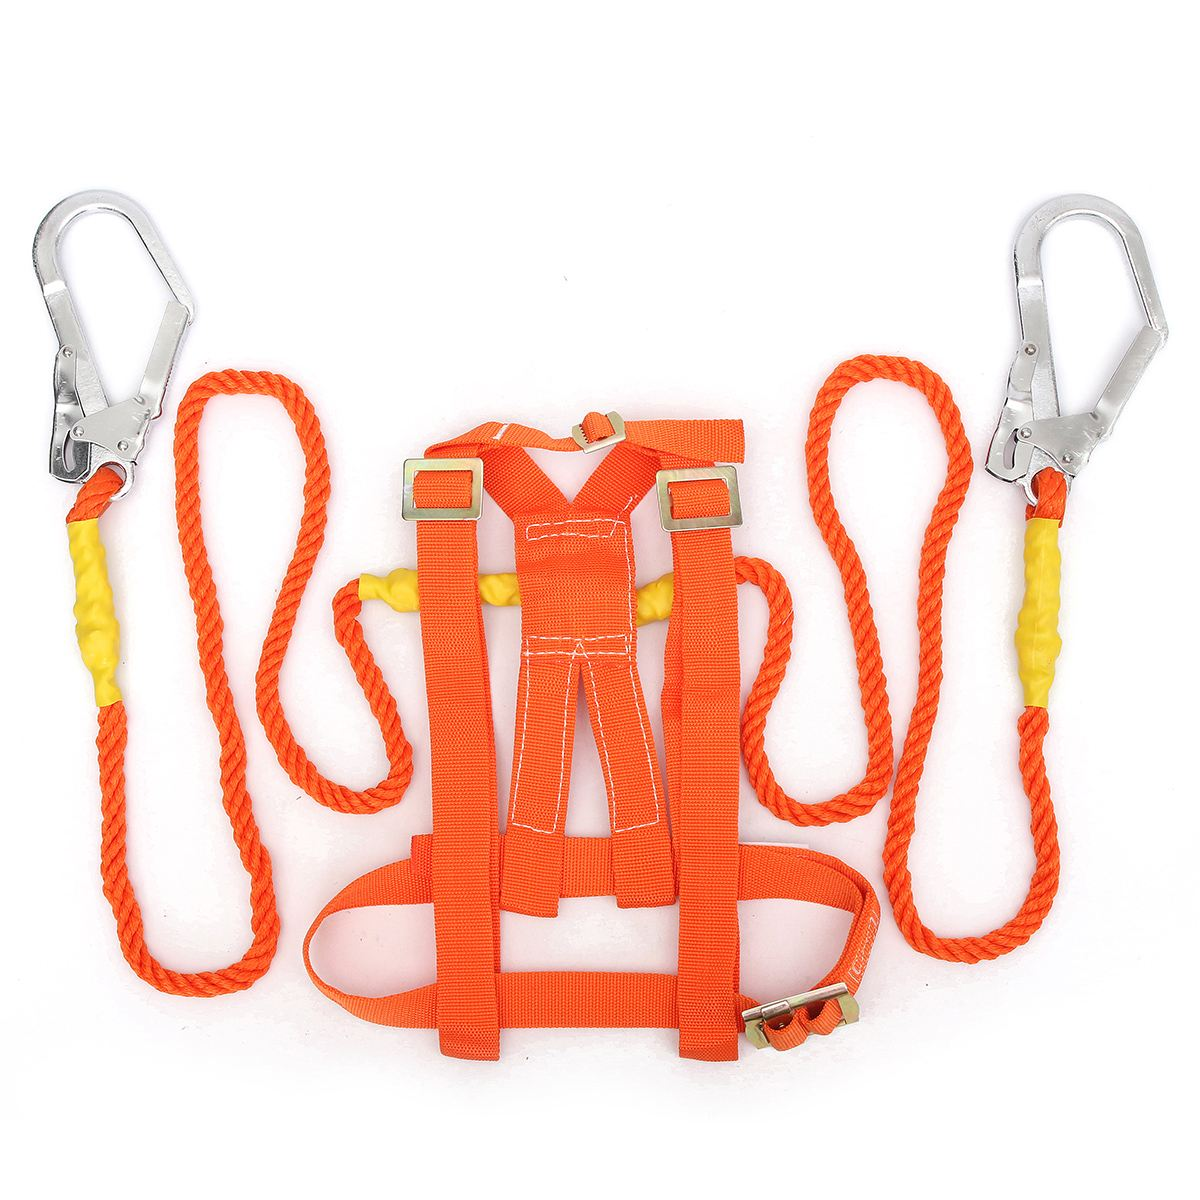 Safurance Outdoor Climbing Climb Mountain Rope Safety Waist Belt Protection Equipment Workplace Safety Harness 25kn professional carabiner d shape safety master lock outdoor rock climbing buckle equipment